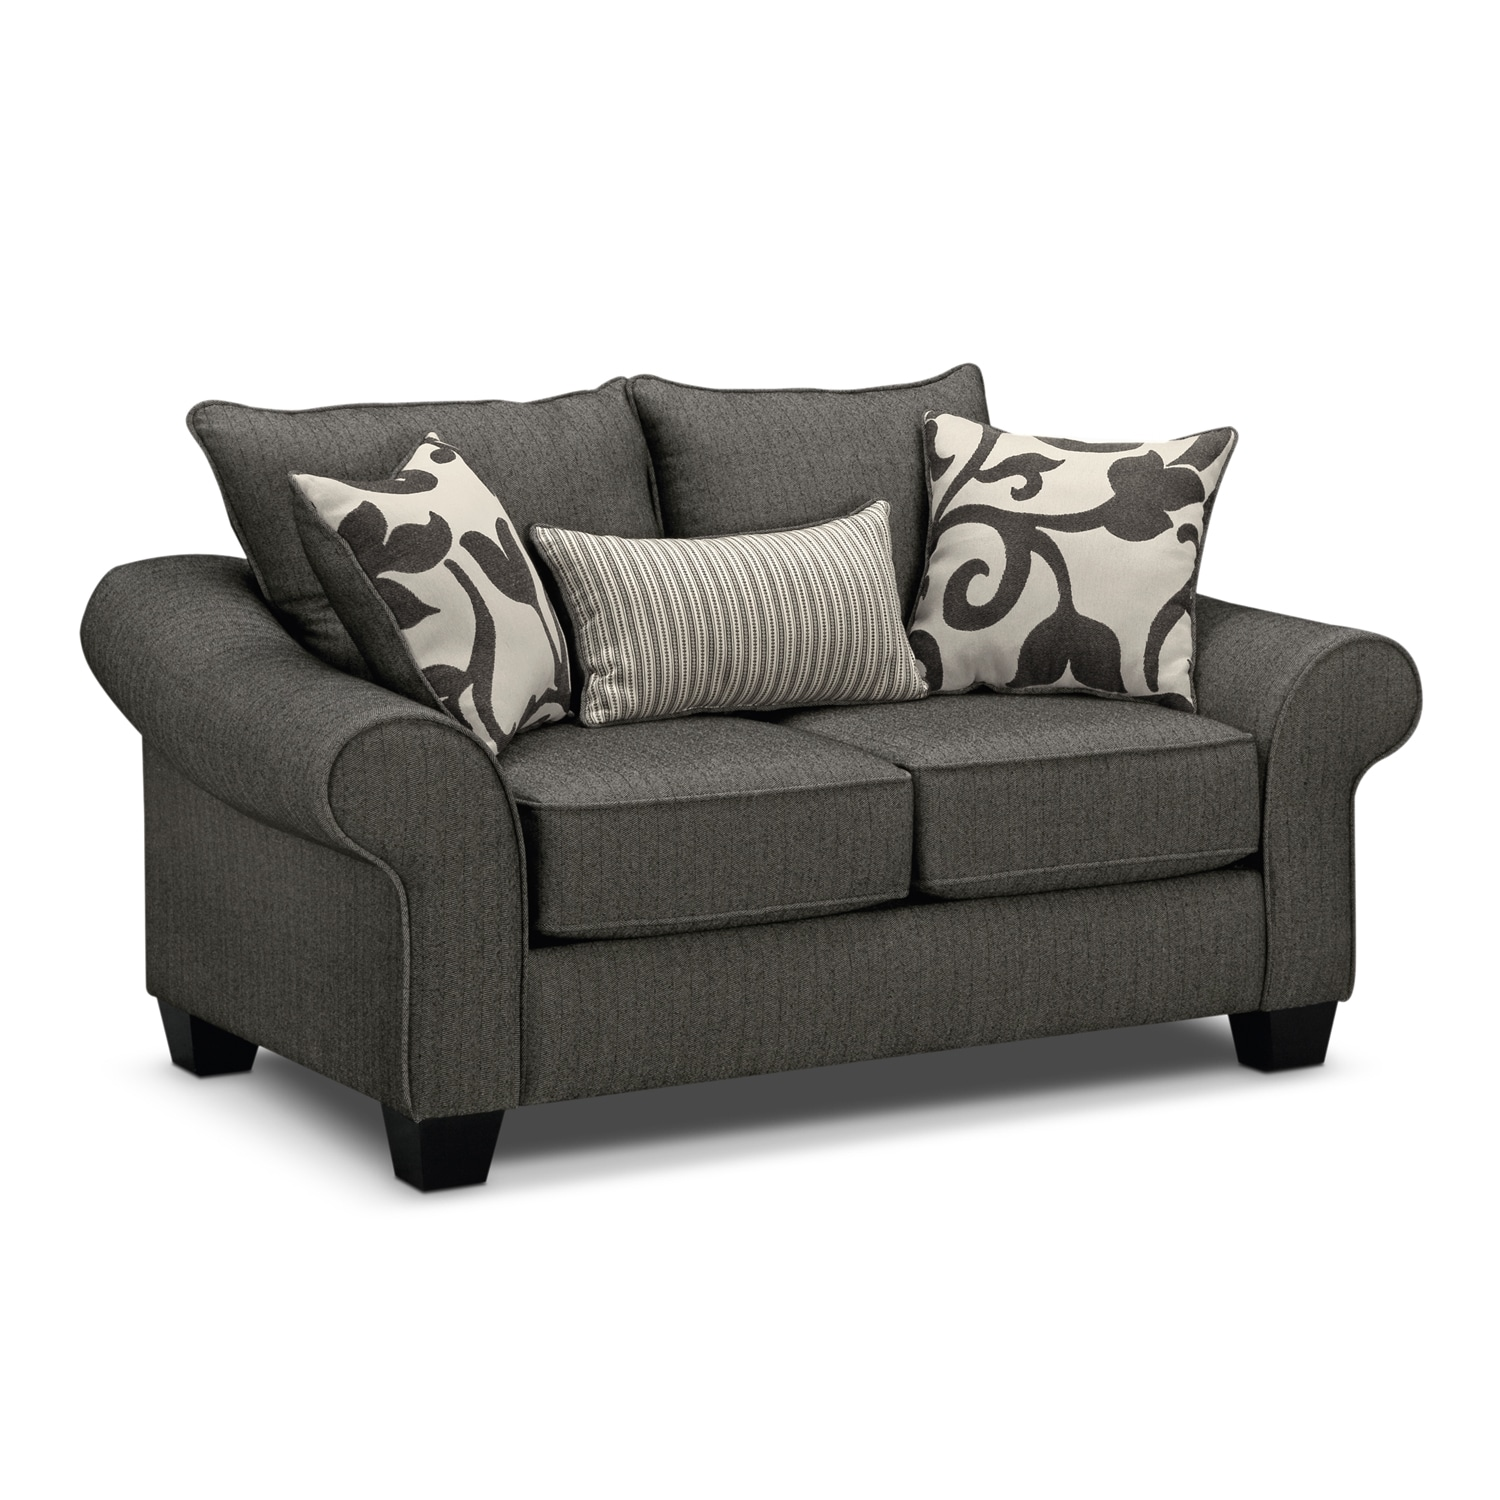 Living Room Furniture - Colette Loveseat - Gray